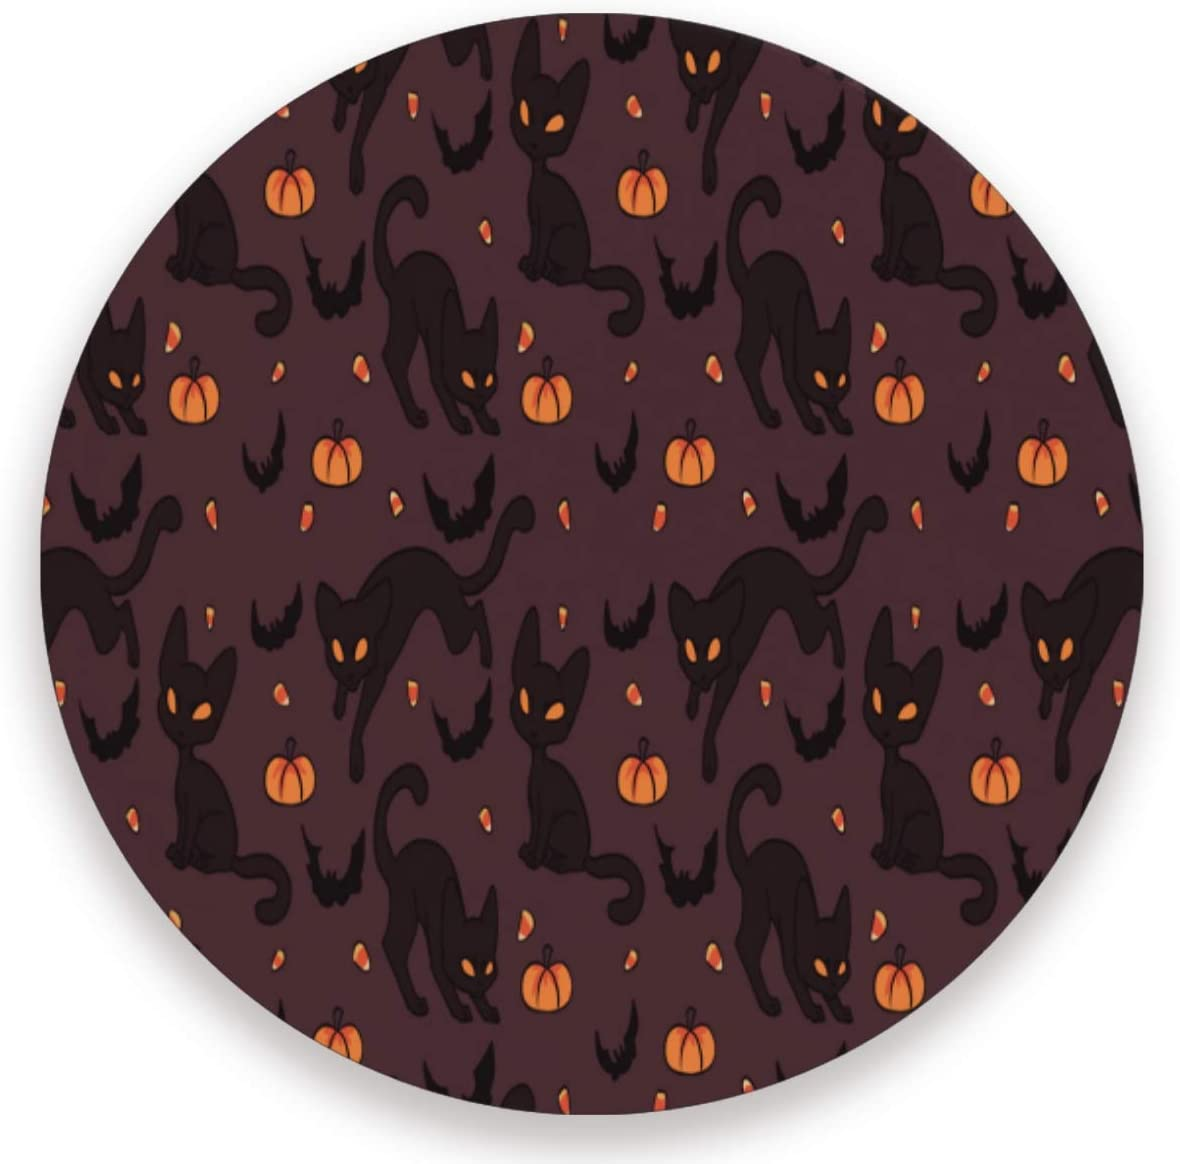 Olinyou Haloween Cat Bat Pumpkin Candy Brown Coasters for Drinks Set of 2 Absorbent Moisture Absorbing Ceramic Stone Coaster with Cork Base